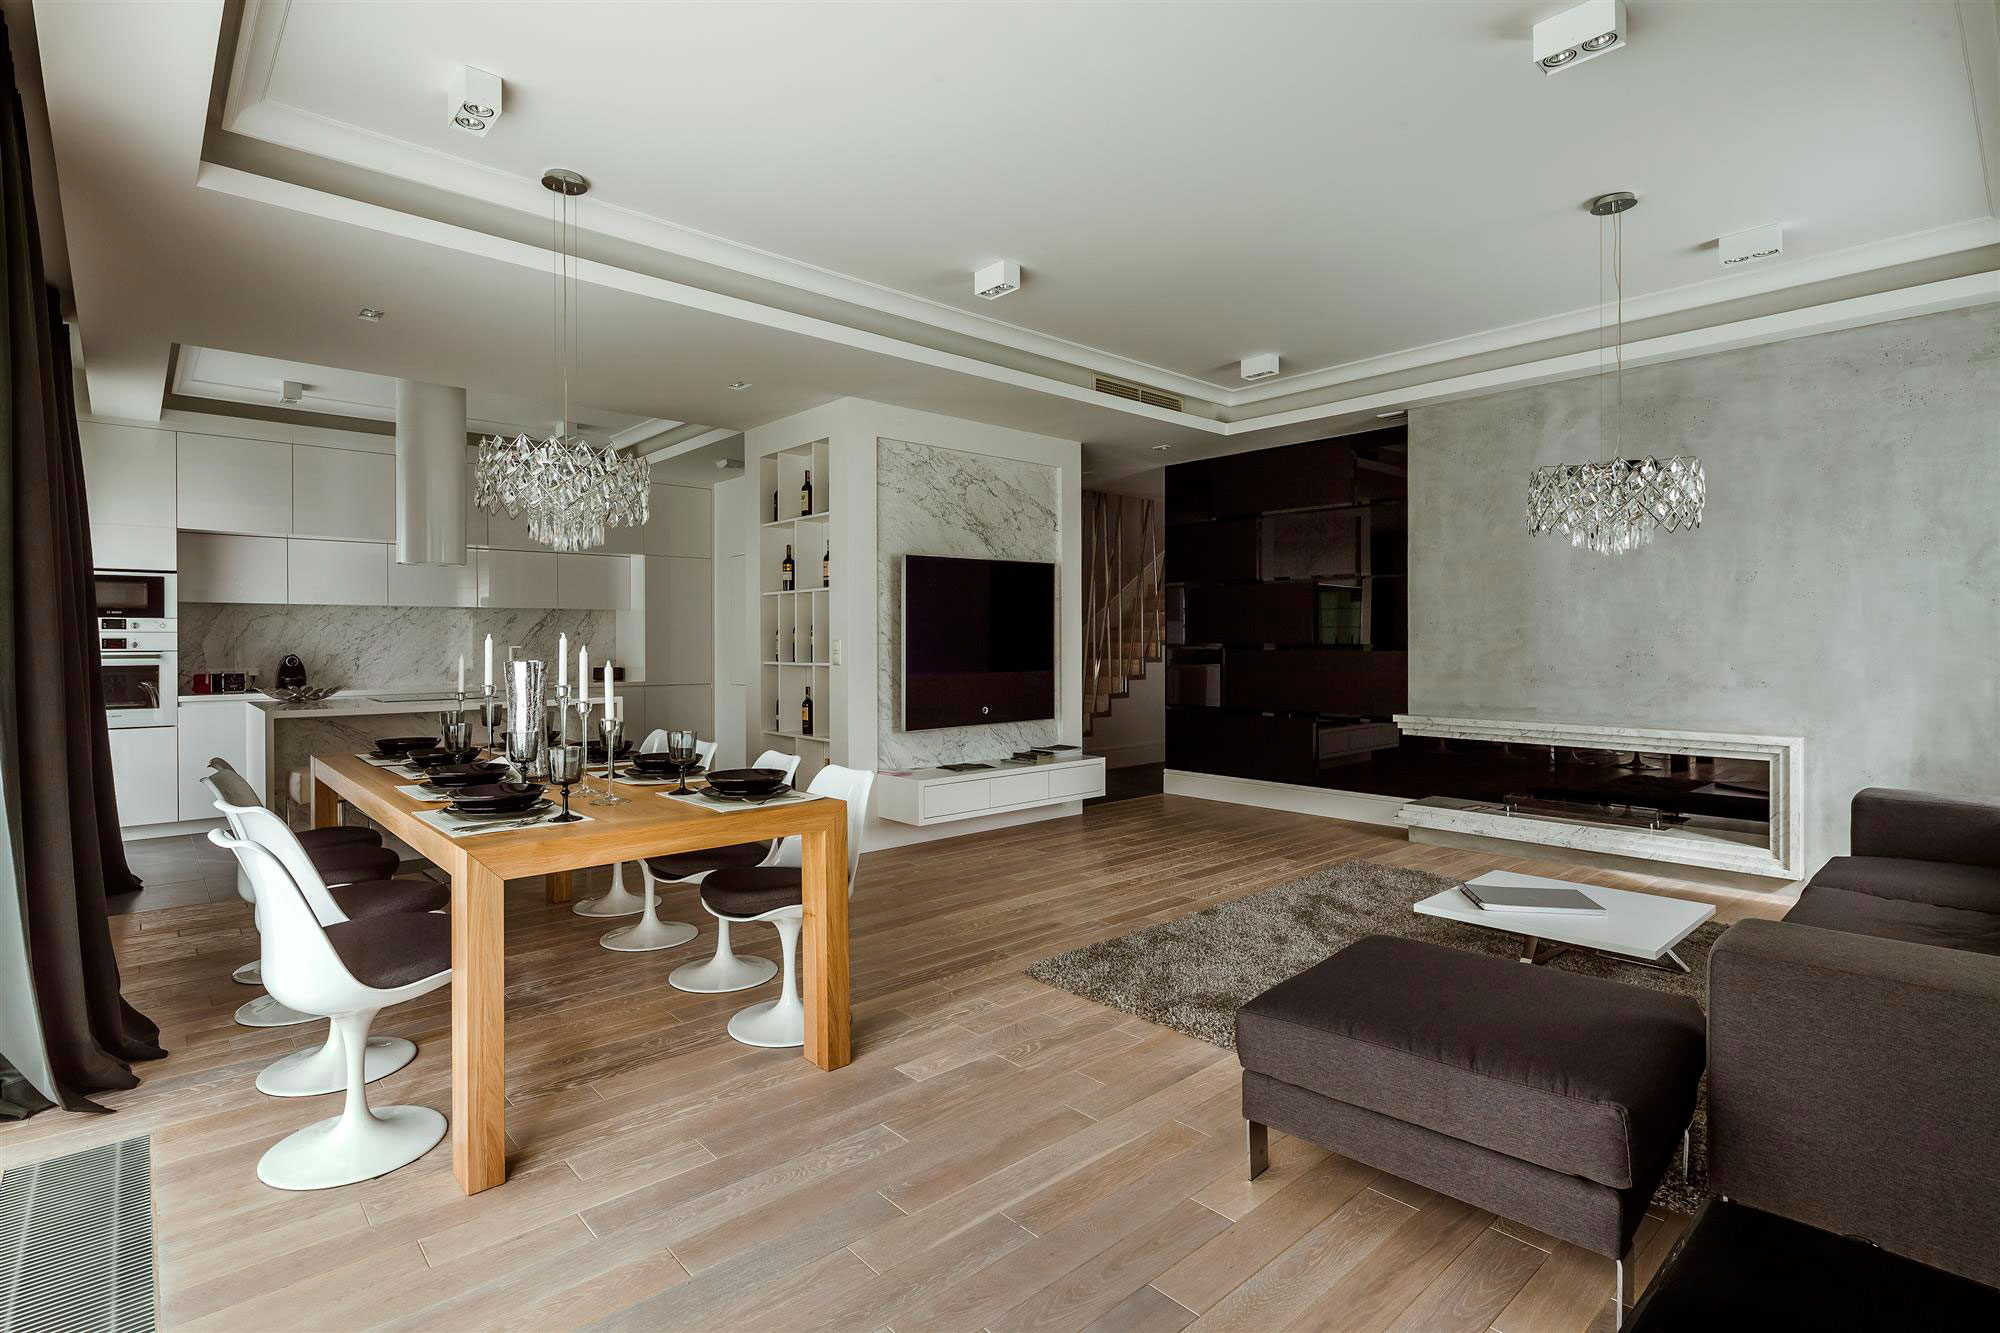 Apartment-in-Warsaw-04